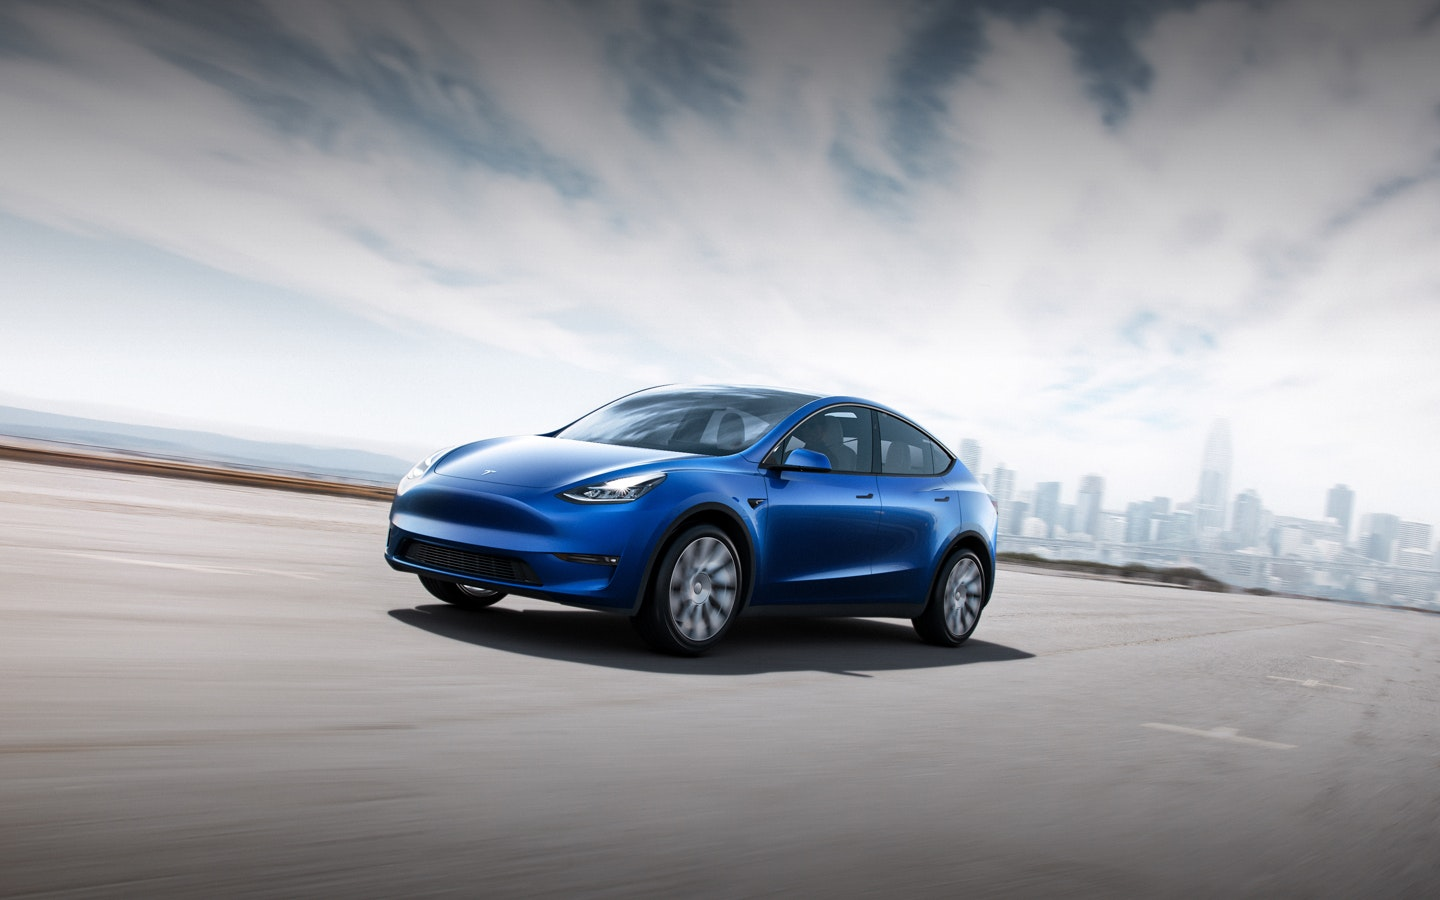 Tesla Model Y Release Date: Elon Musk Has Yet to Make a Key Decision